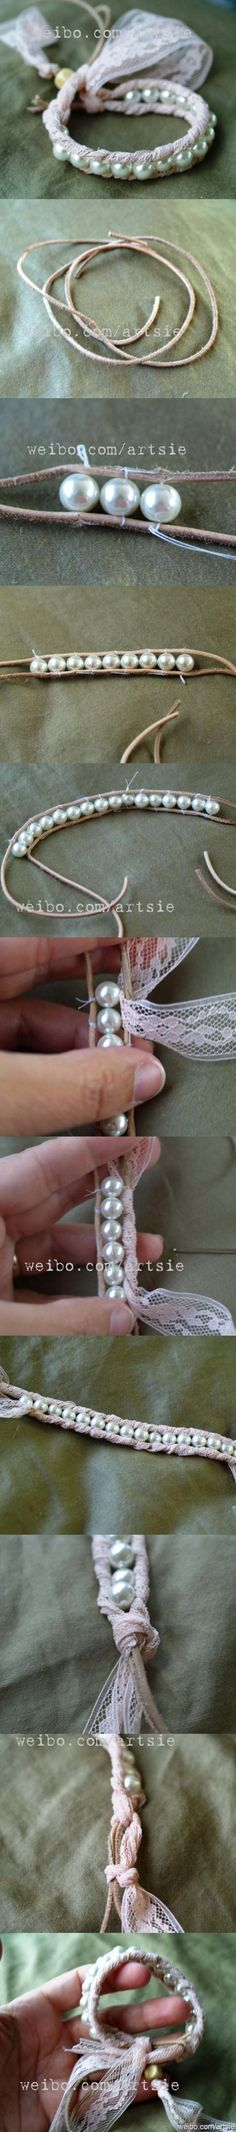 19 DIY Fashion Projects,  thought of your wedding anna